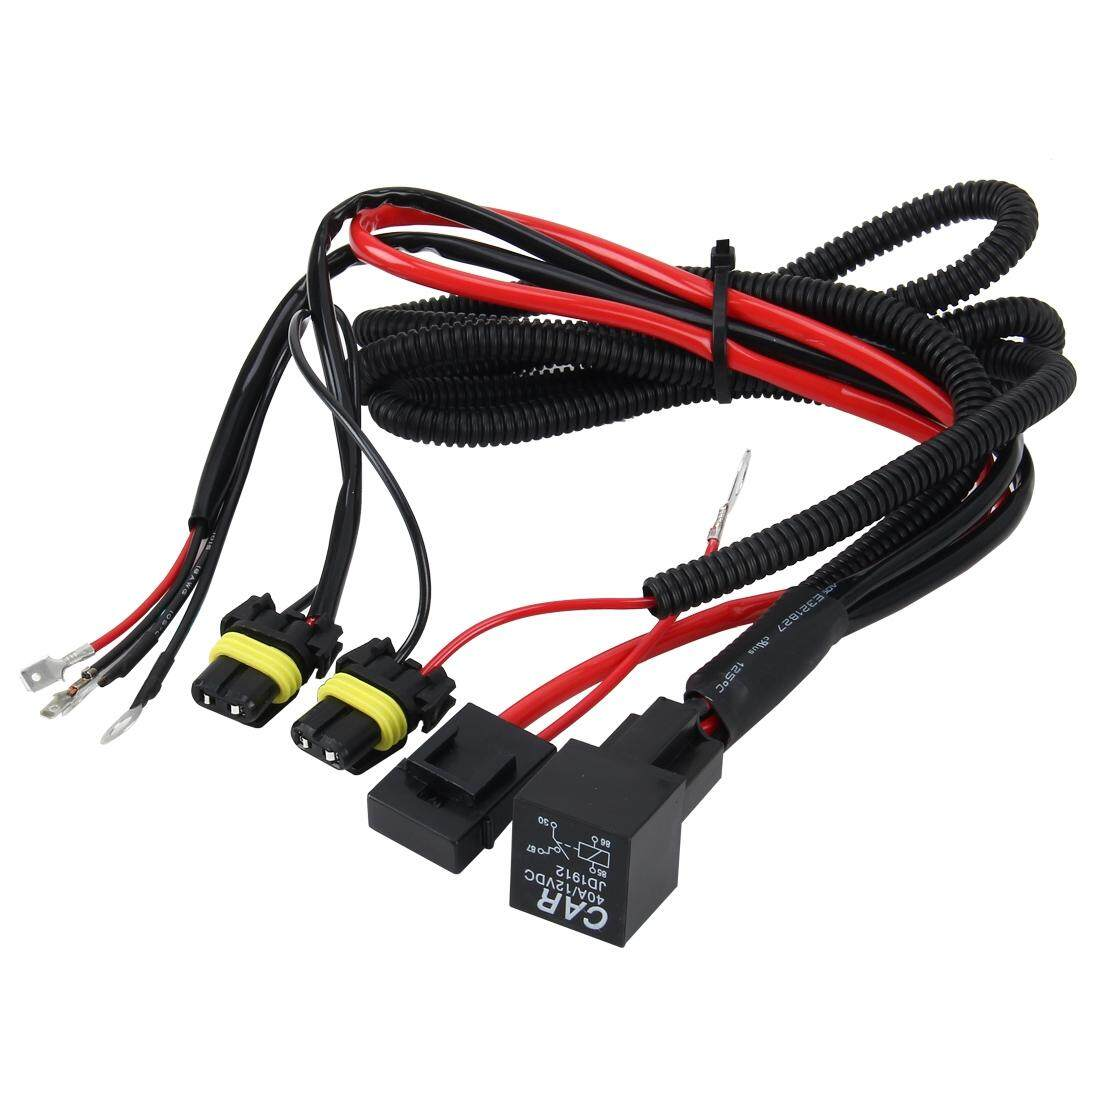 Features Bellamall 12v 40a Wiring Harness Kit Line Set Headlight Relay Dc H3 Bulb Strengthen Group Hid Xenon Controller Cable